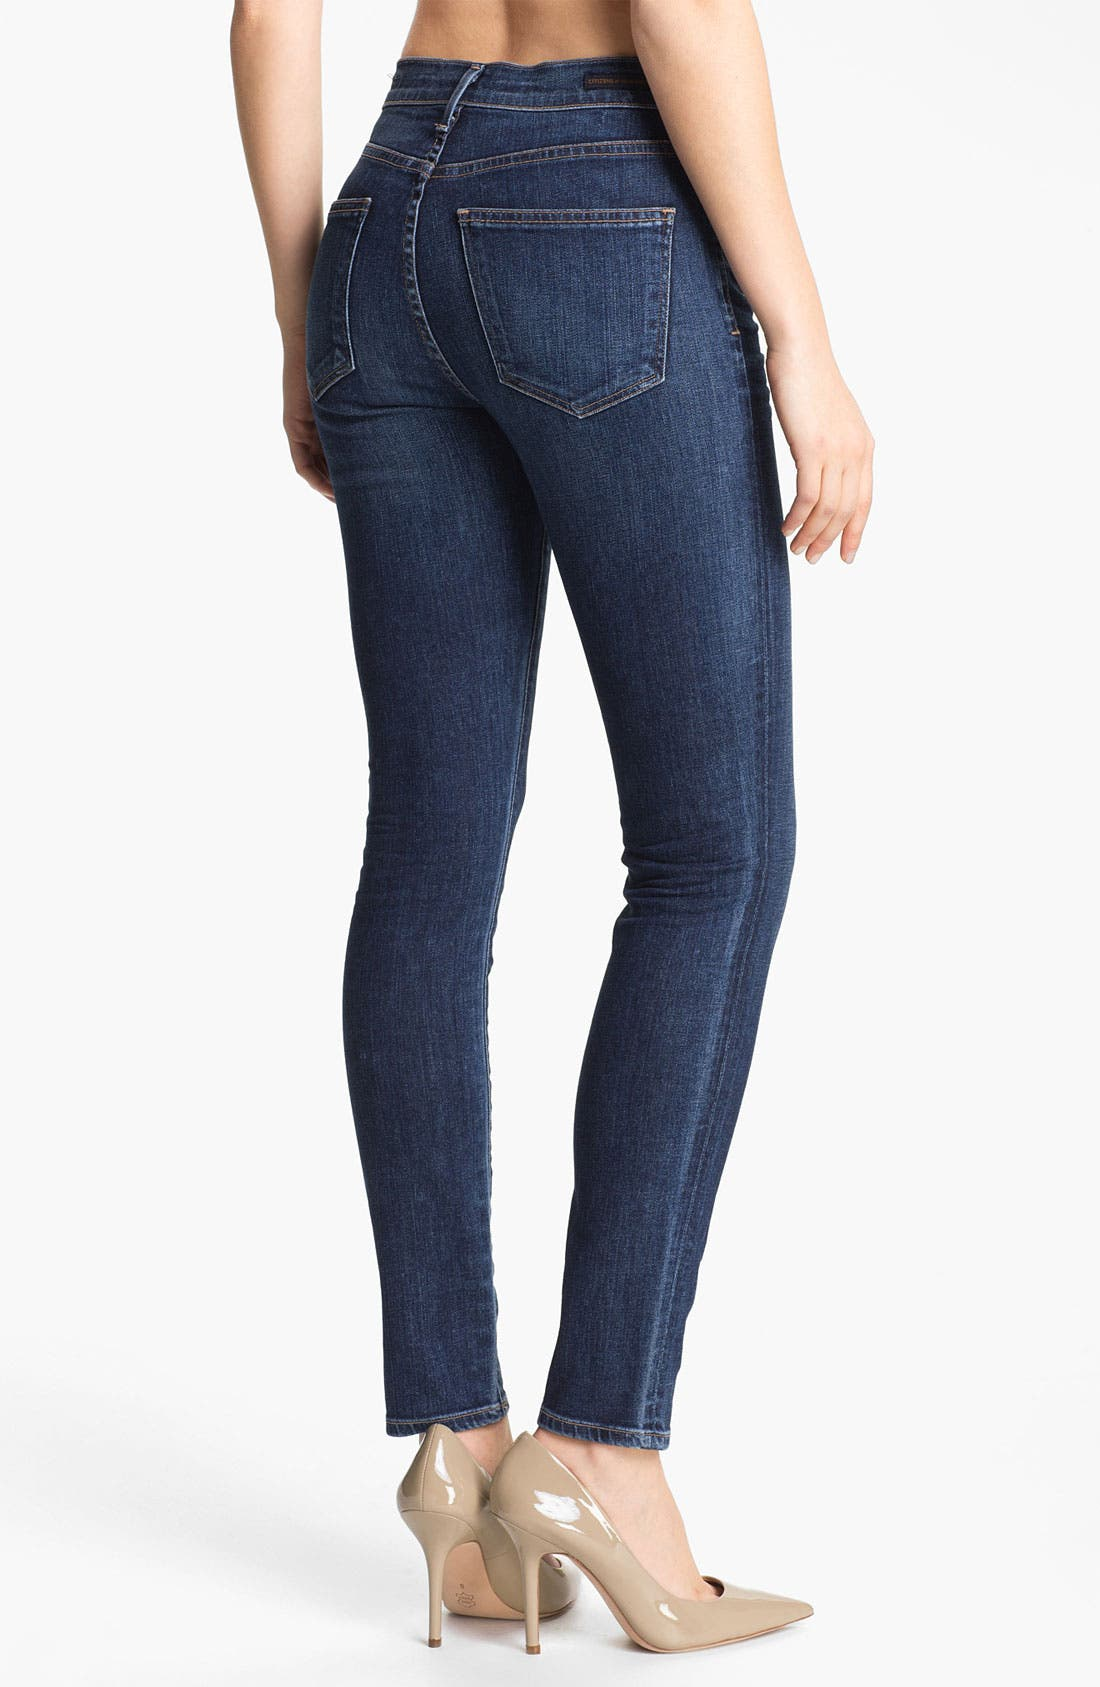 Alternate Image 2  - Citizens of Humanity 'Rocket' High Rise Skinny Jeans (Crispy)